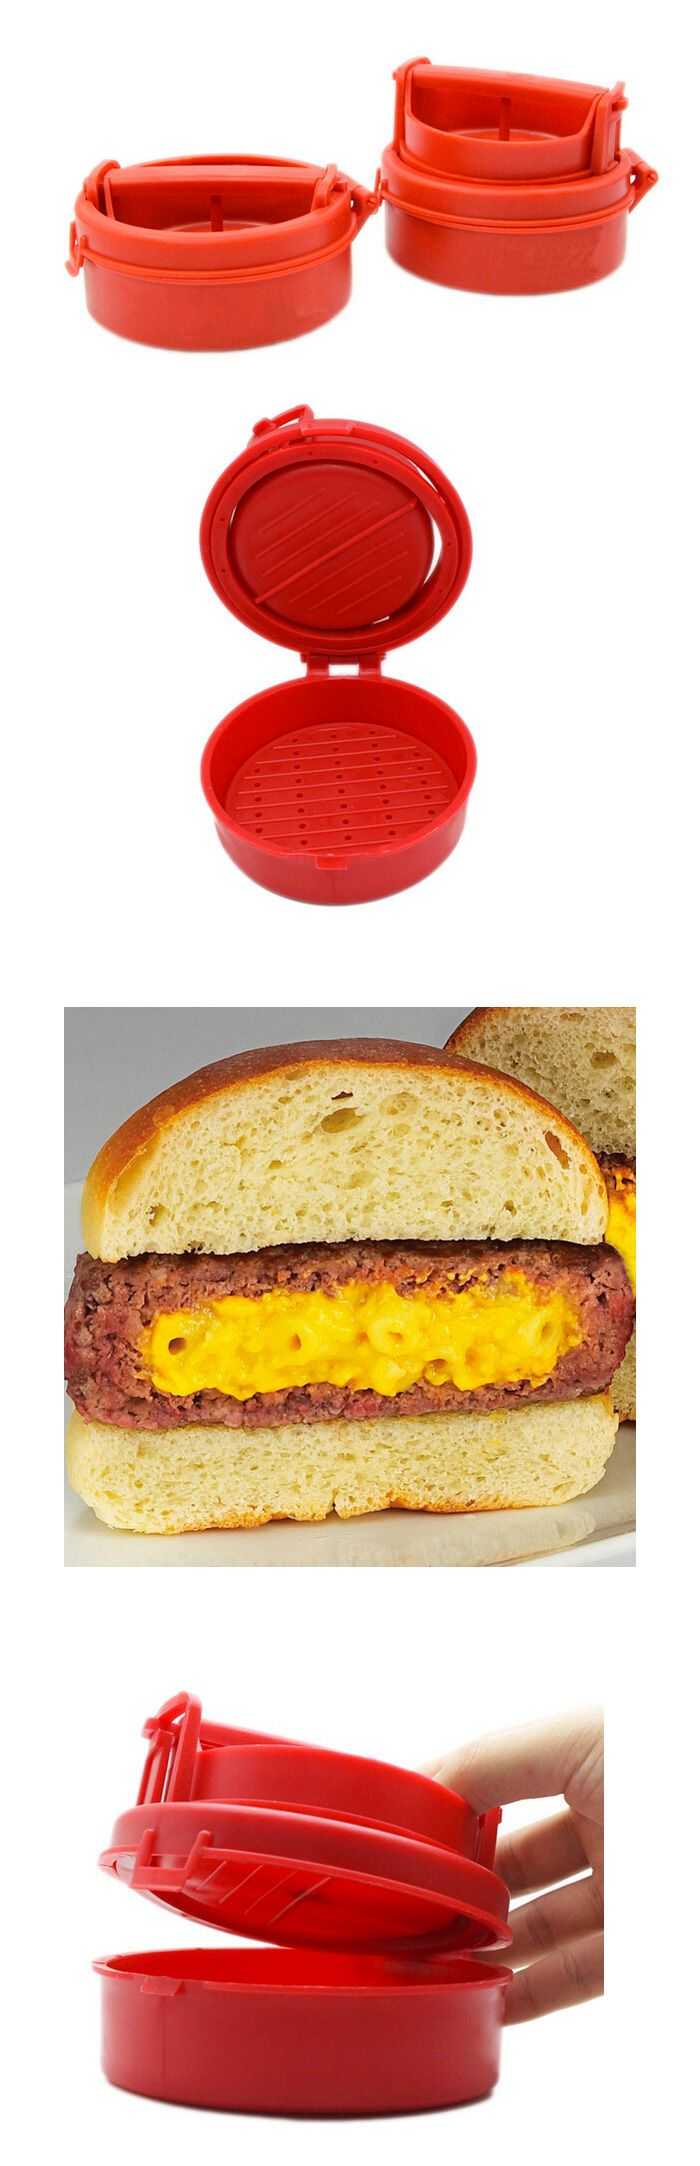 Simple Burger Press, AU$9.99 plus postage from Always Sales (price correct as at 18.09.17)